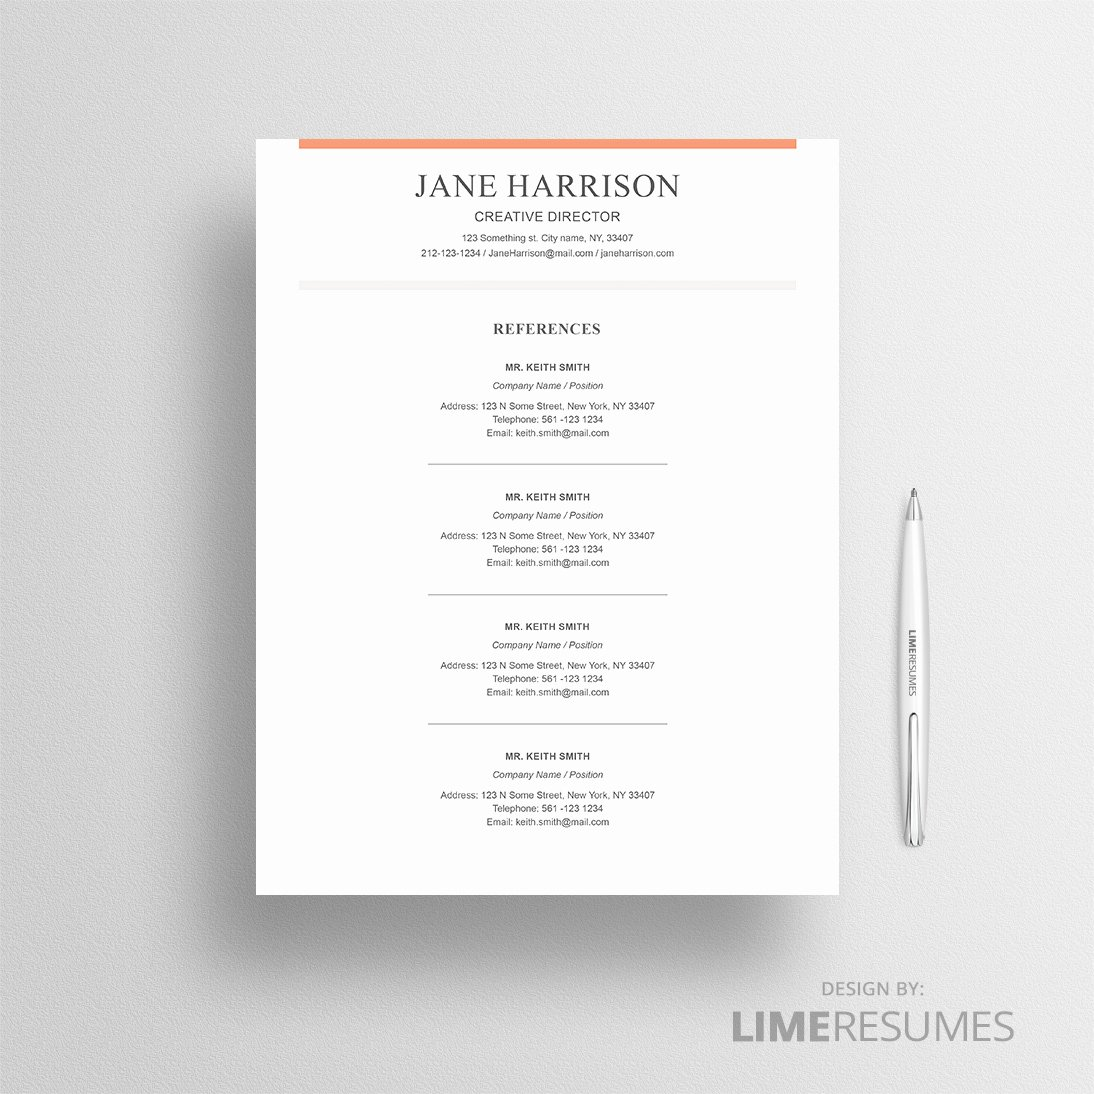 Reference Page for Resume Template Awesome Cv Template for Microsoft Word Professional Cv Template